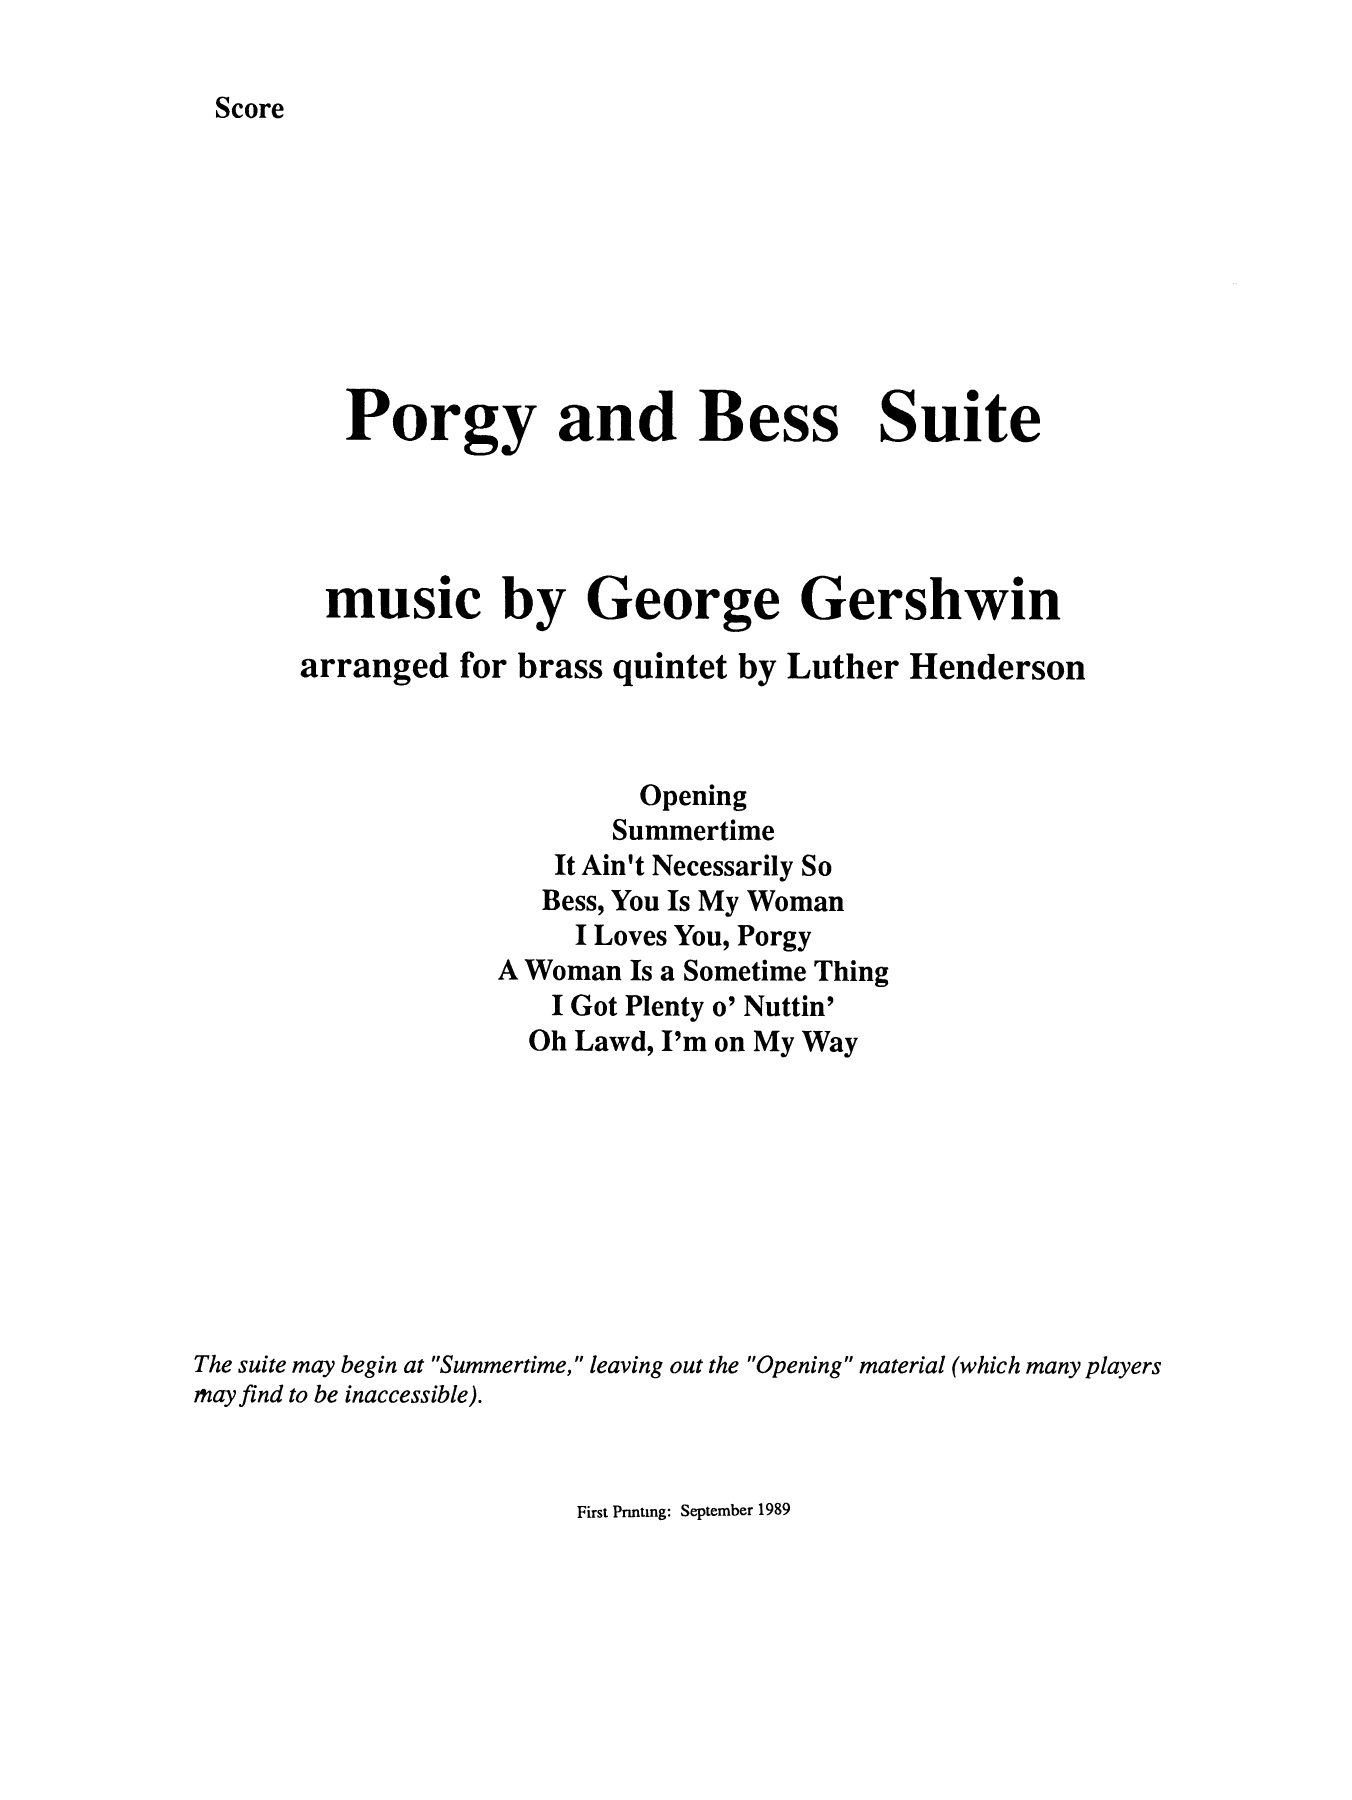 Porgy and Bess Suite - Full Score Sheet Music